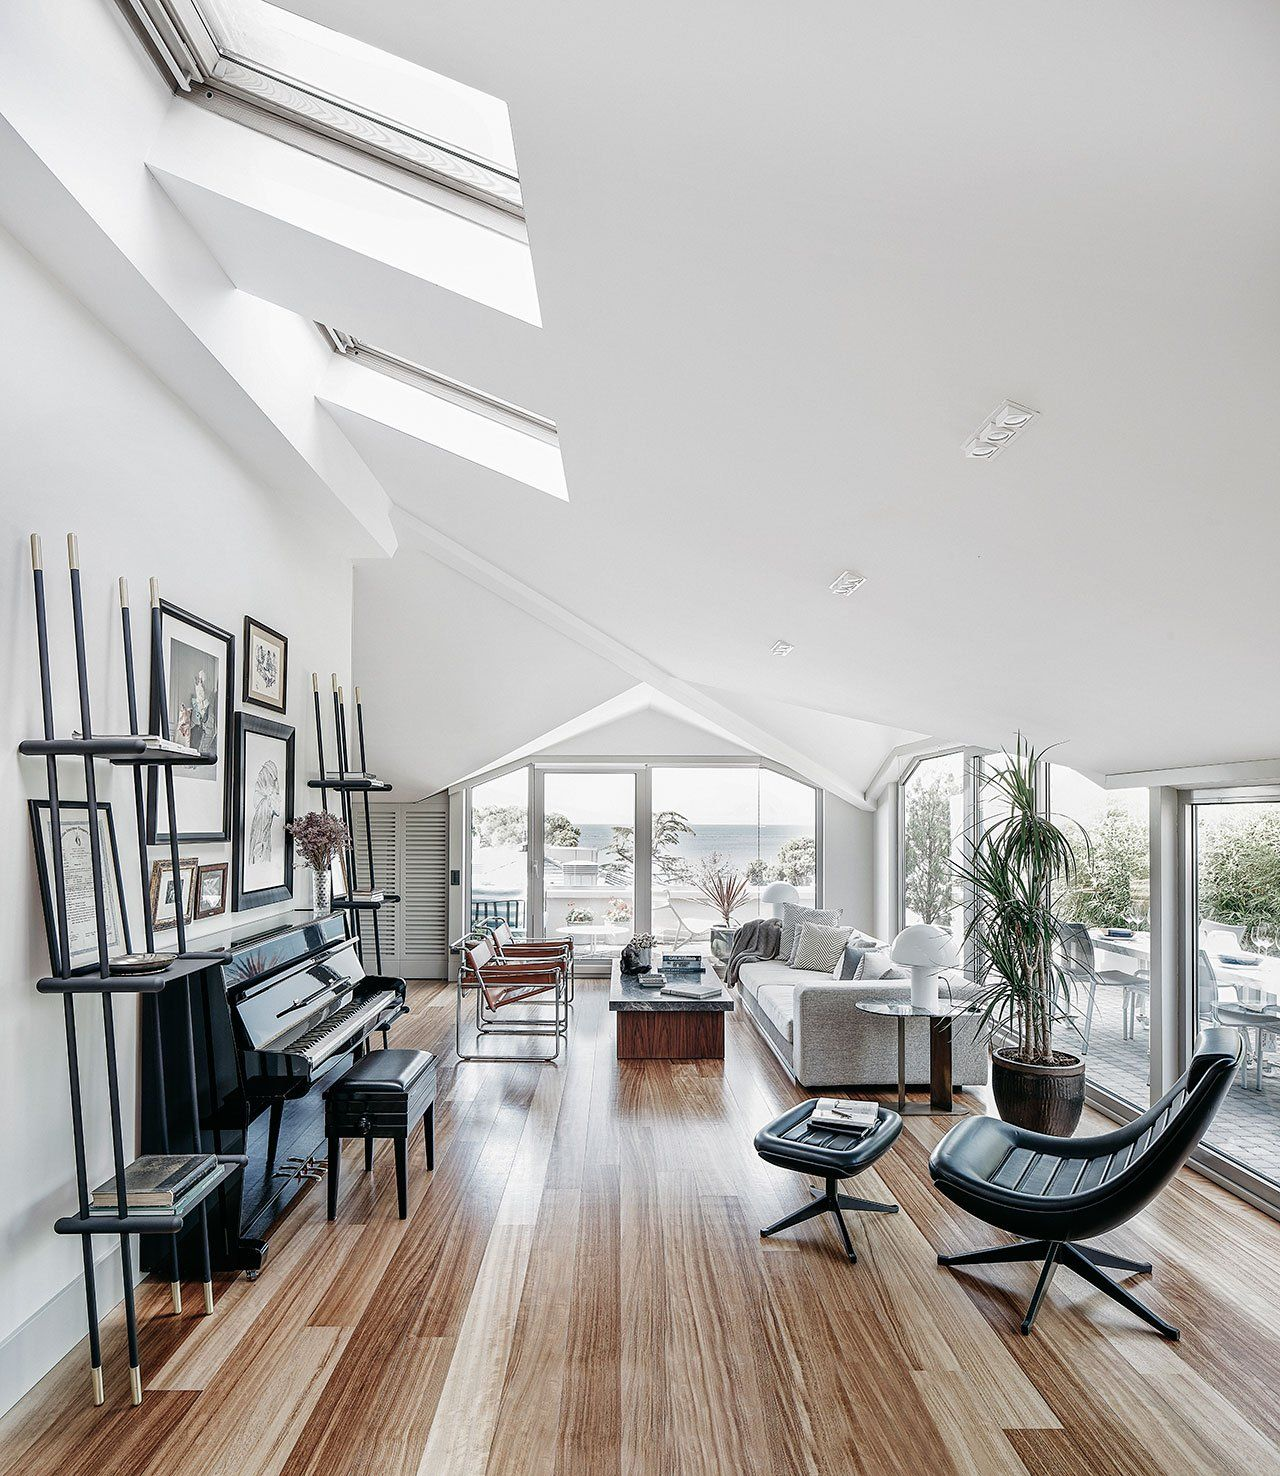 15 Peaceful Asian Living Room Interiors Designed For Comfort: Sunlight And Glass